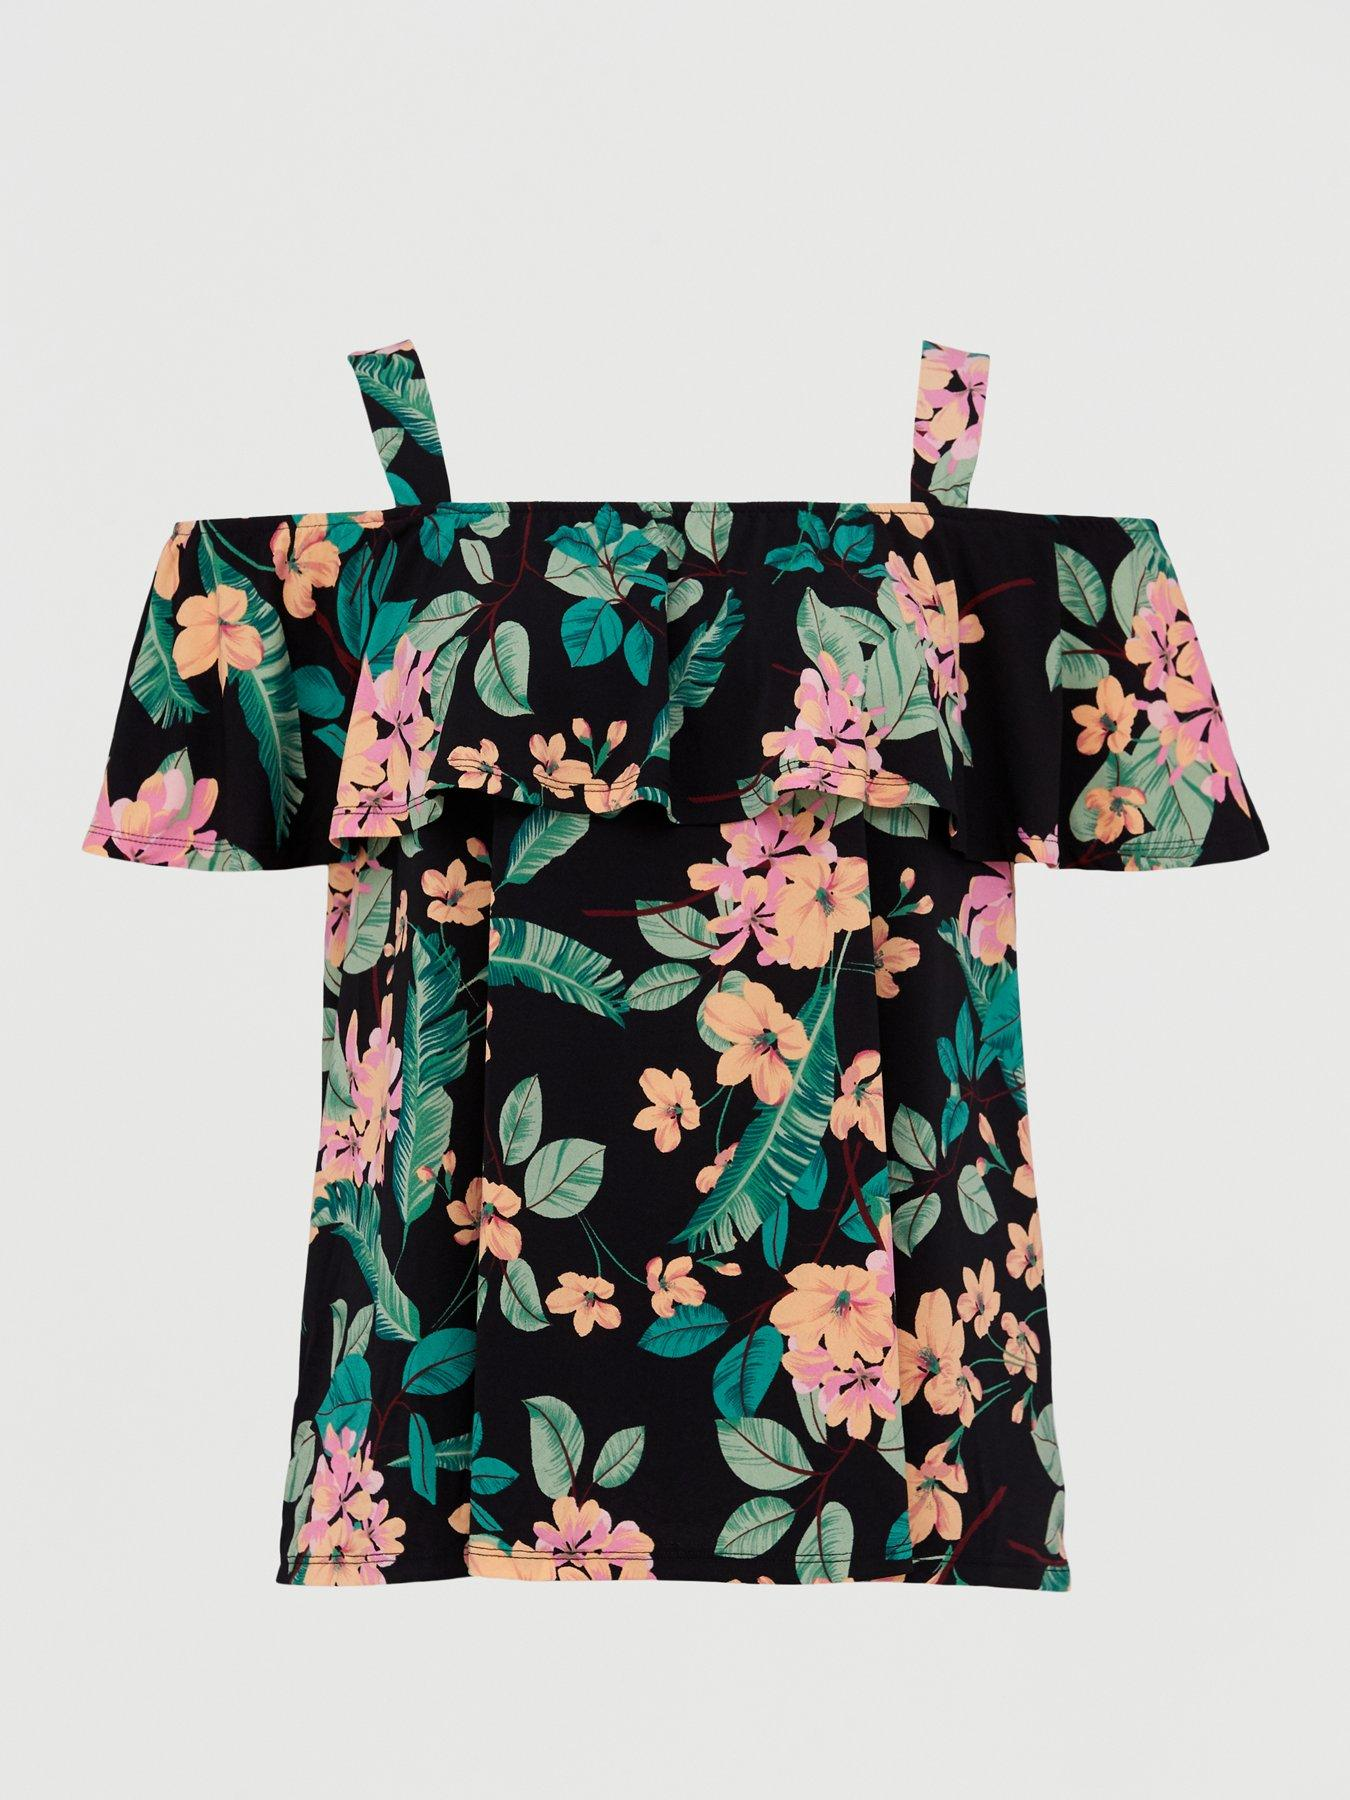 Womens Plus Size V Neck Top T Shirt Ladies Party Office Leaf Print Blouse Tee